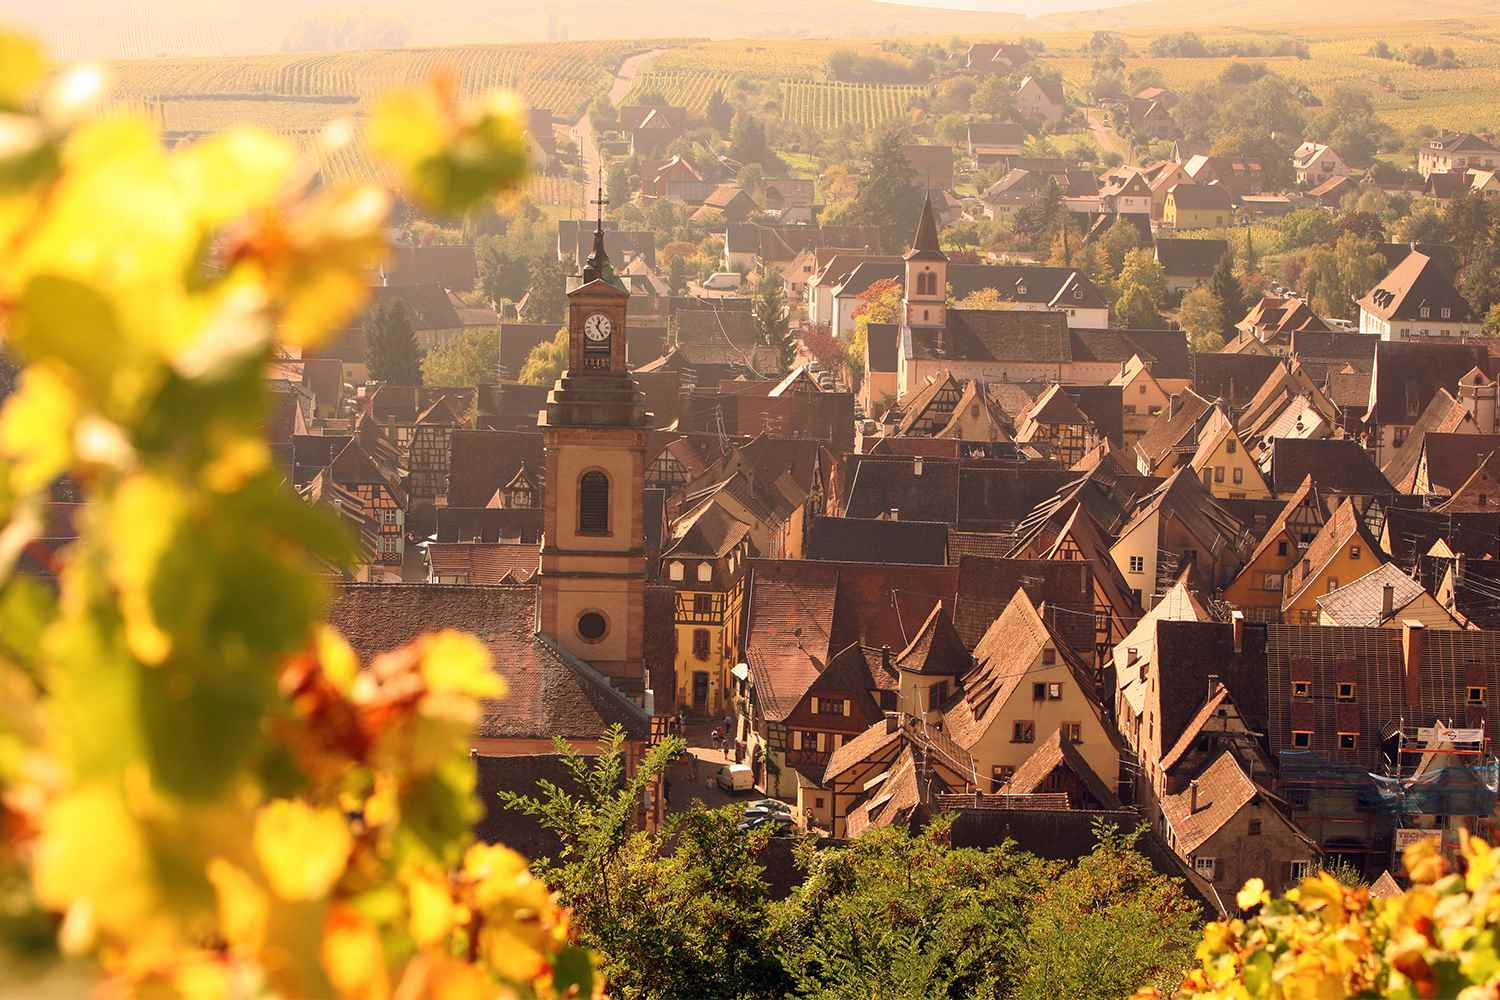 /Assets/CruiseGallery/Thumb/enchantingrhine_FRANCE_Riquewihr_ss_460398736_gallery.jpg